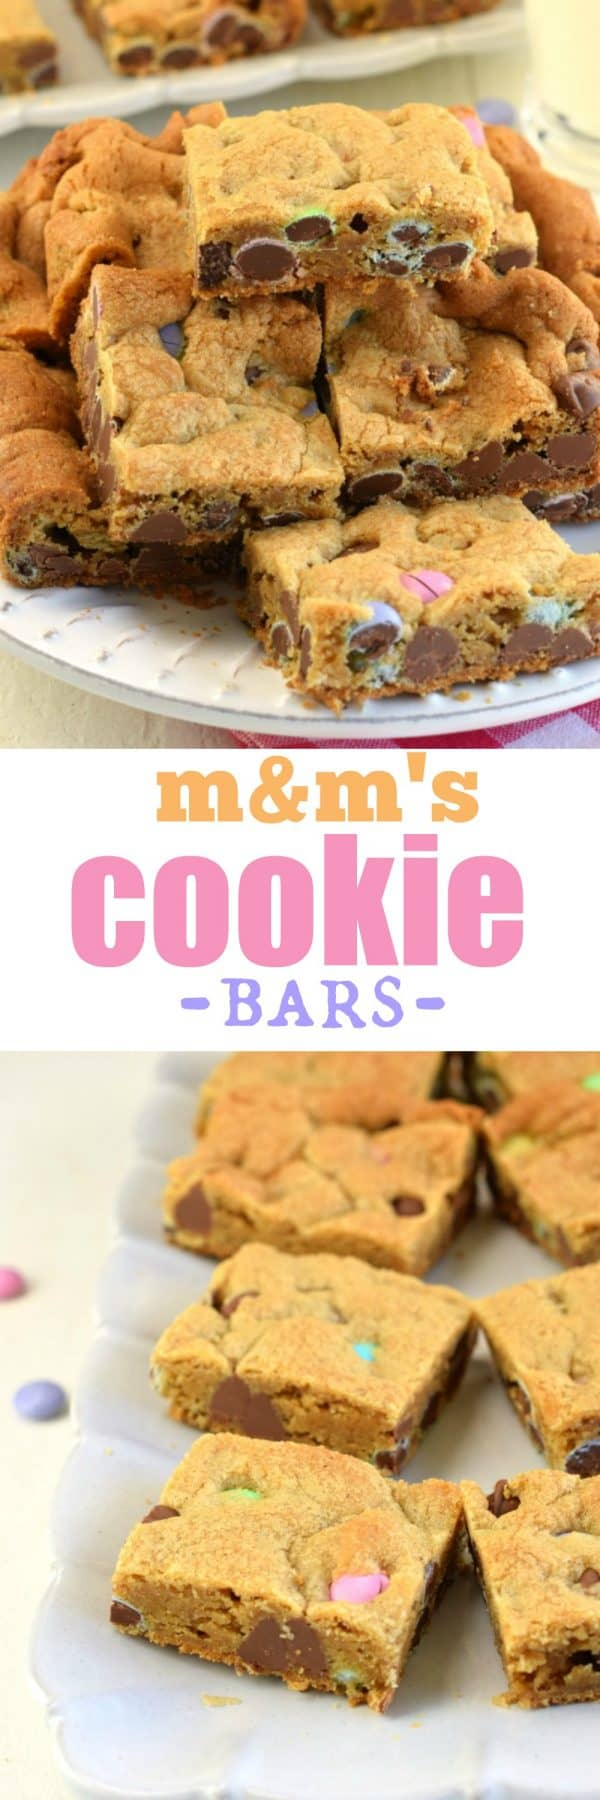 Soft and chewy M&M's Cookie Bars. Packed with brown sugar and chocolate, you won't be able to resist these cookie bars!